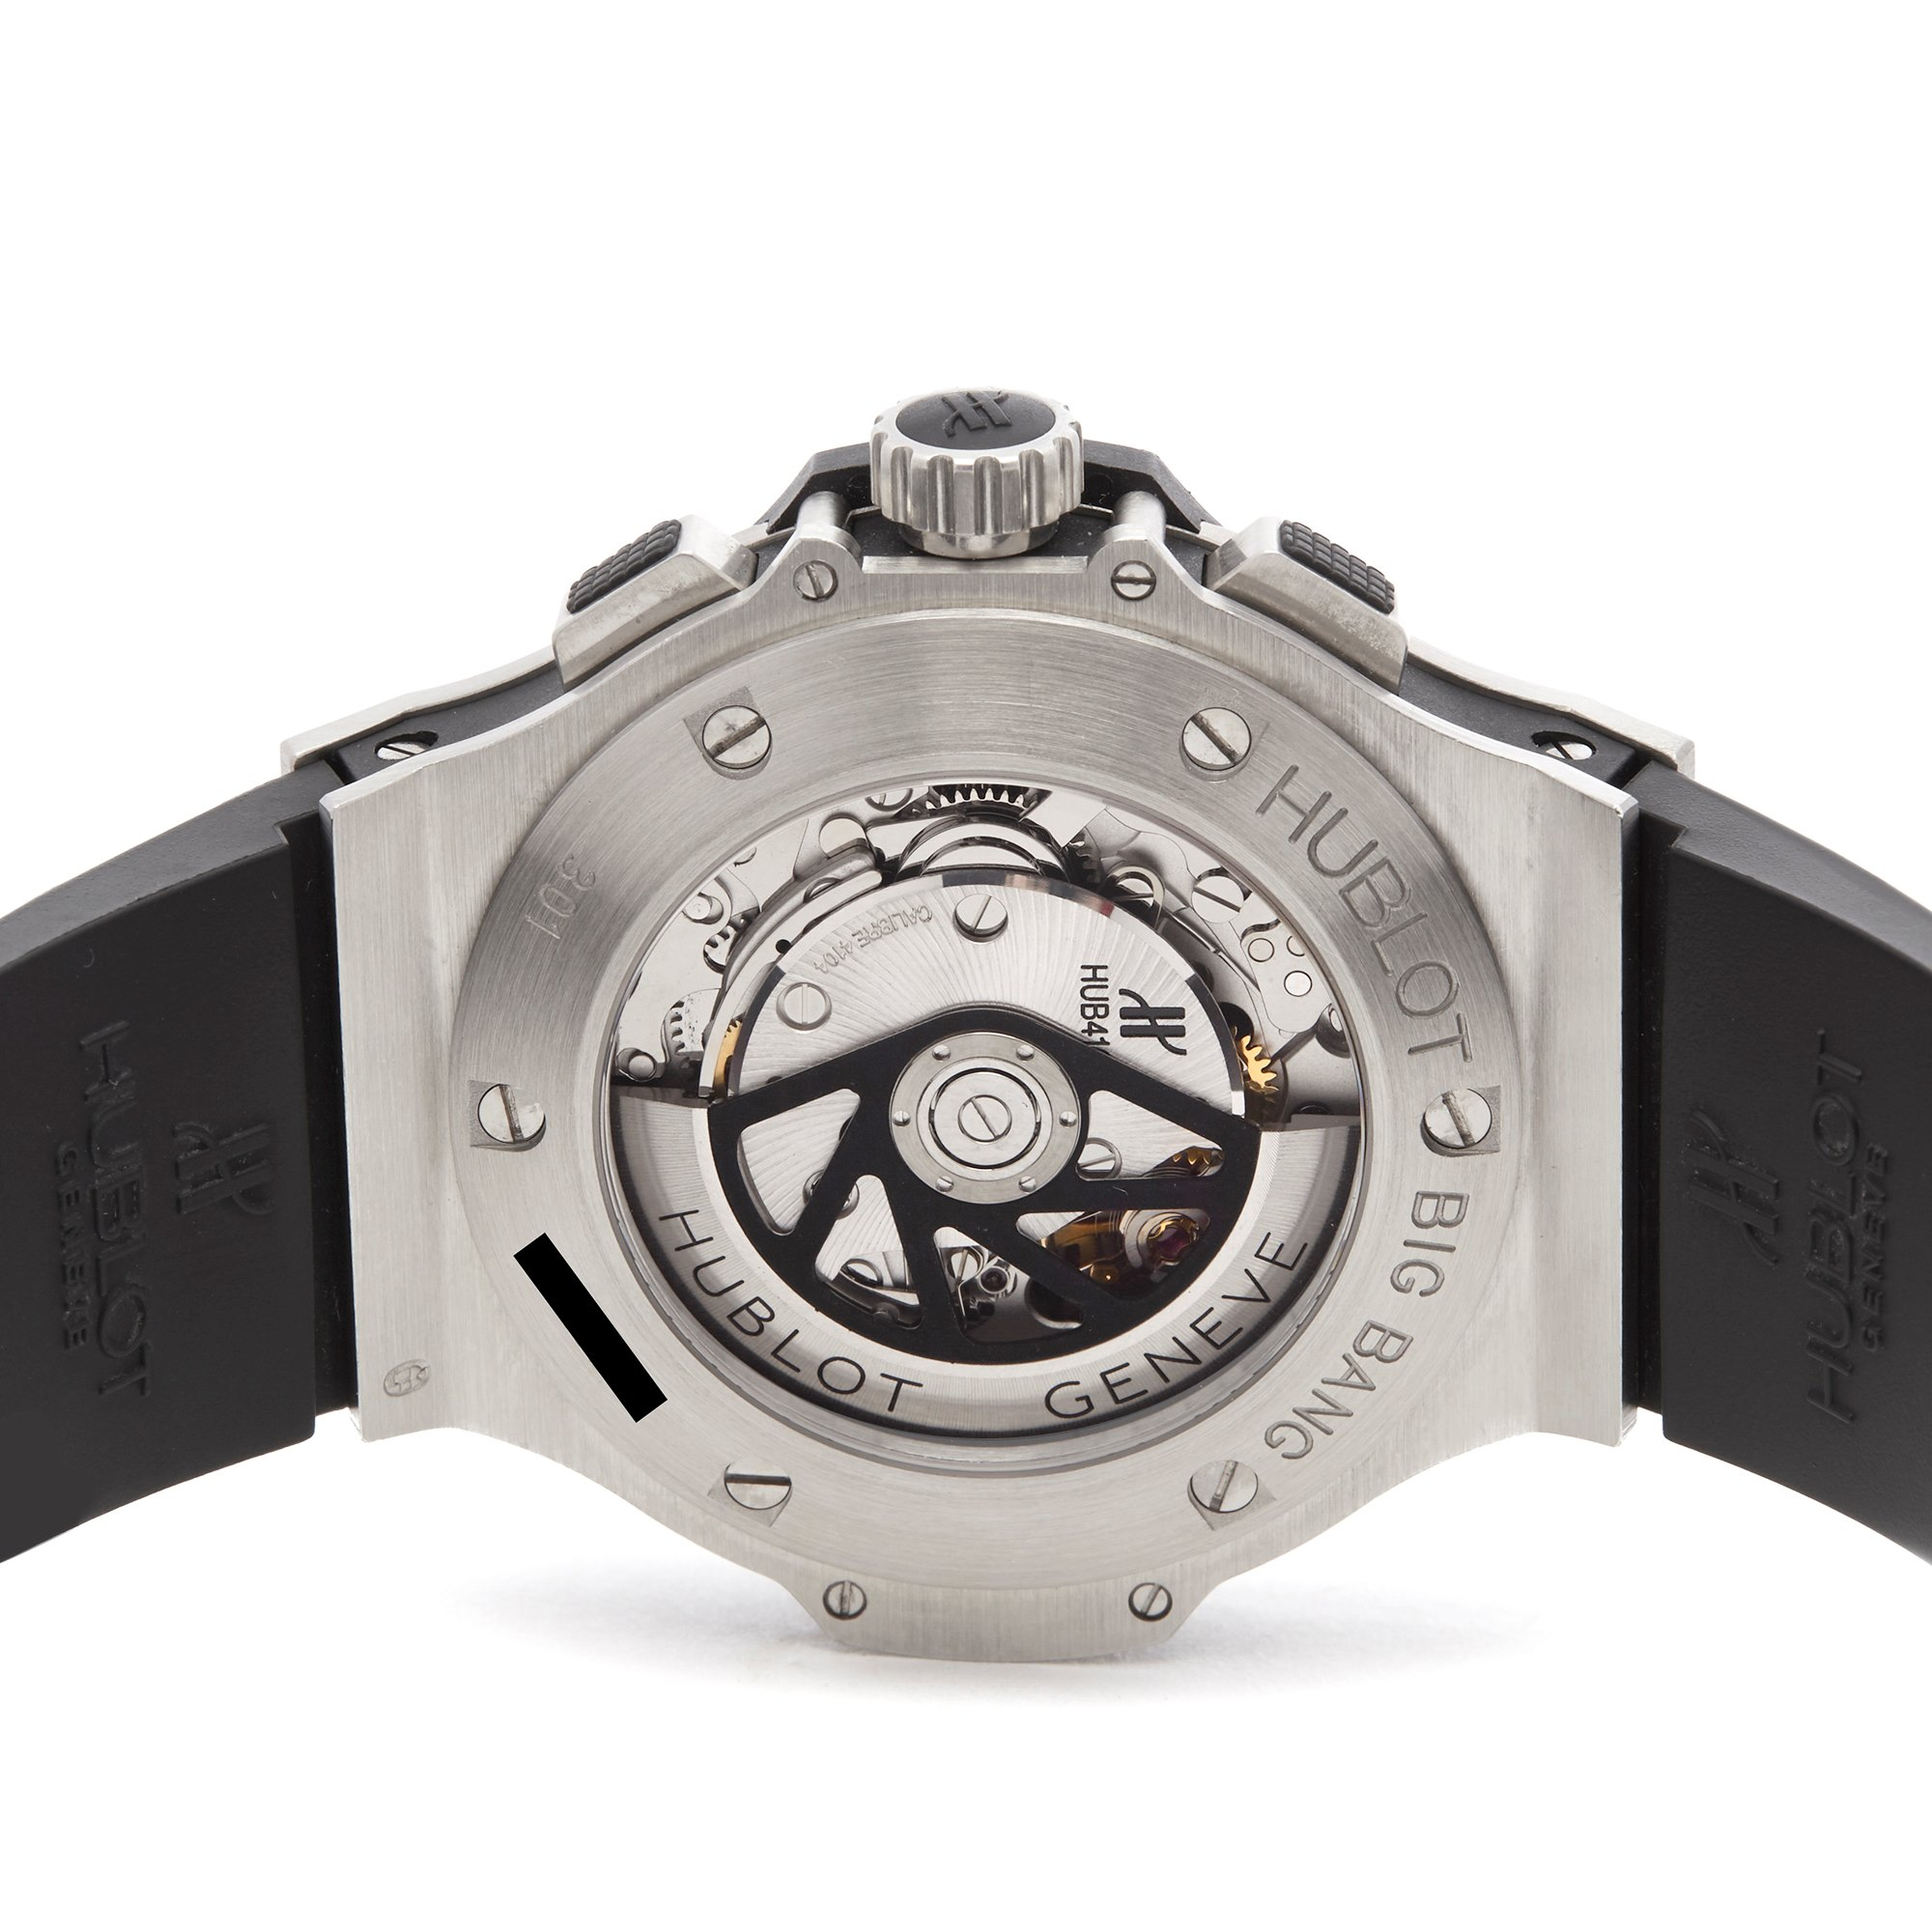 Hublot Big Bang Chronograph Roestvrij Staal 301.SX.1170.RX